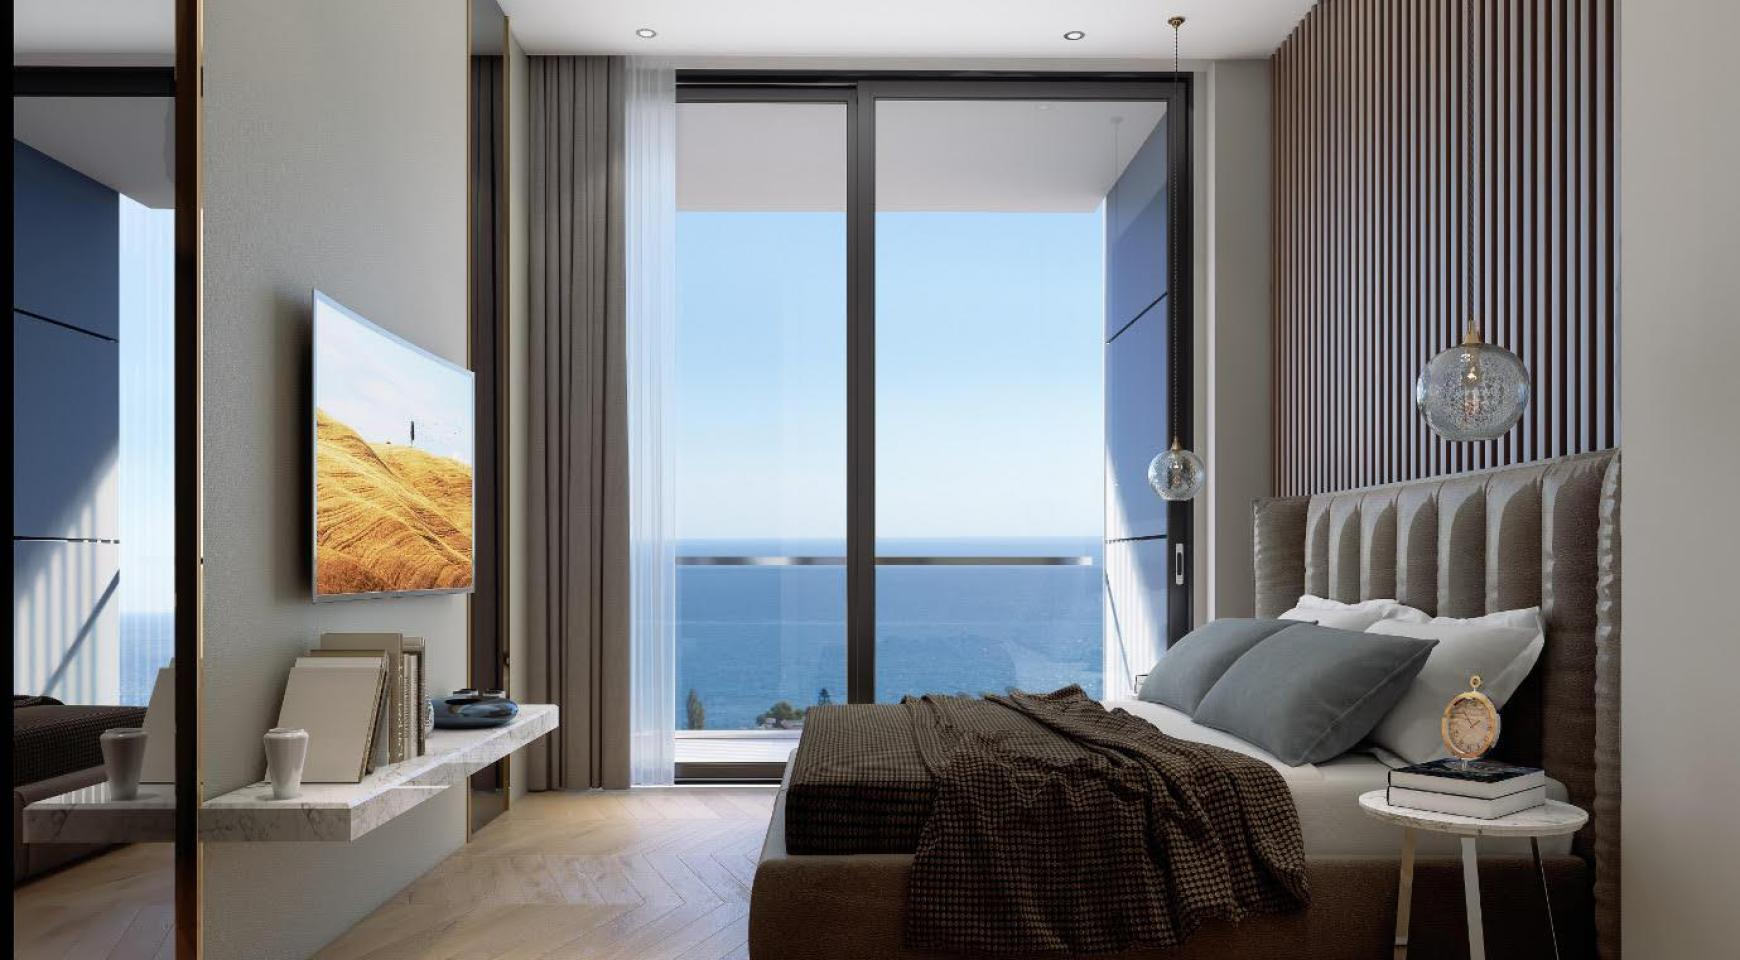 Spacious One Bedroom Apartment with Sea Views in a Luxury Complex - 10